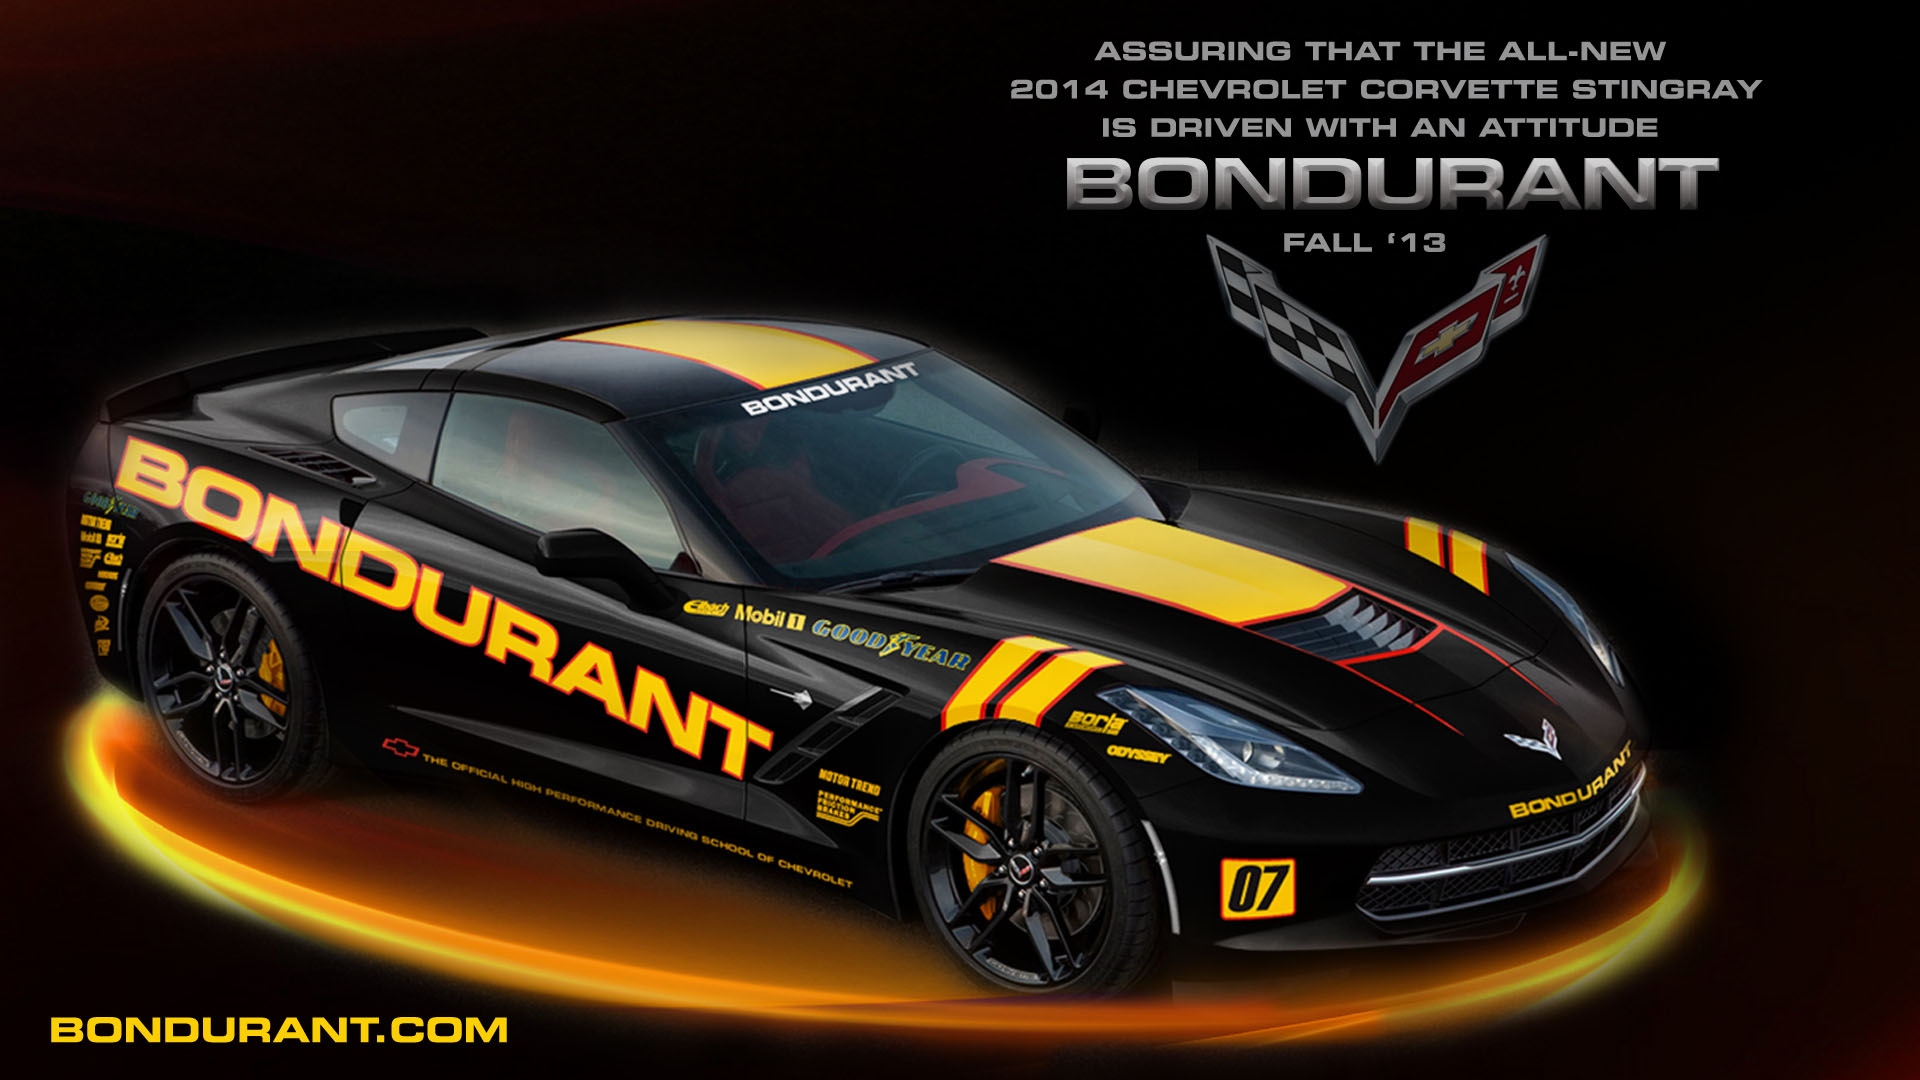 Wallpaper Imagine The 2014 Corvette Stingray In